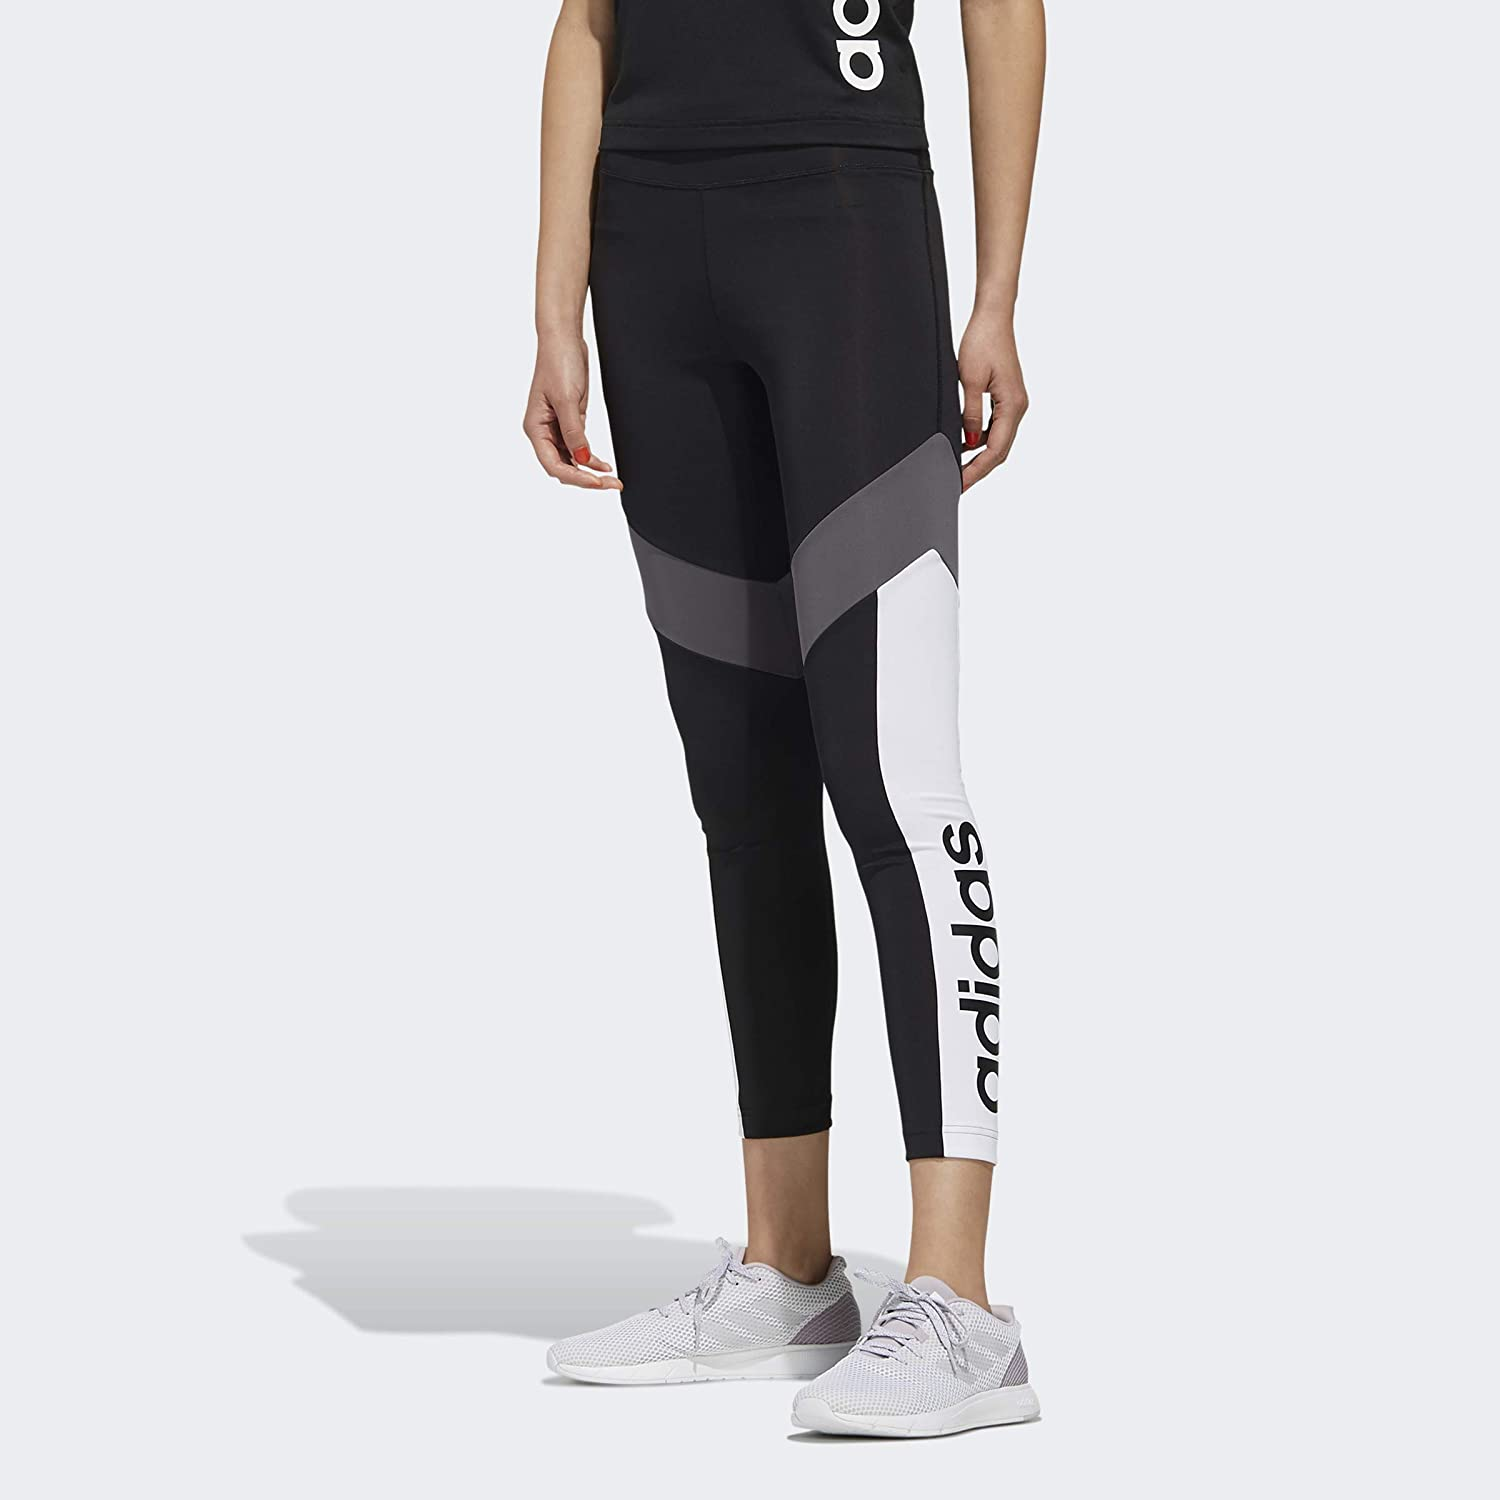 adidas Women's Design 2 Move 7/8 Tights